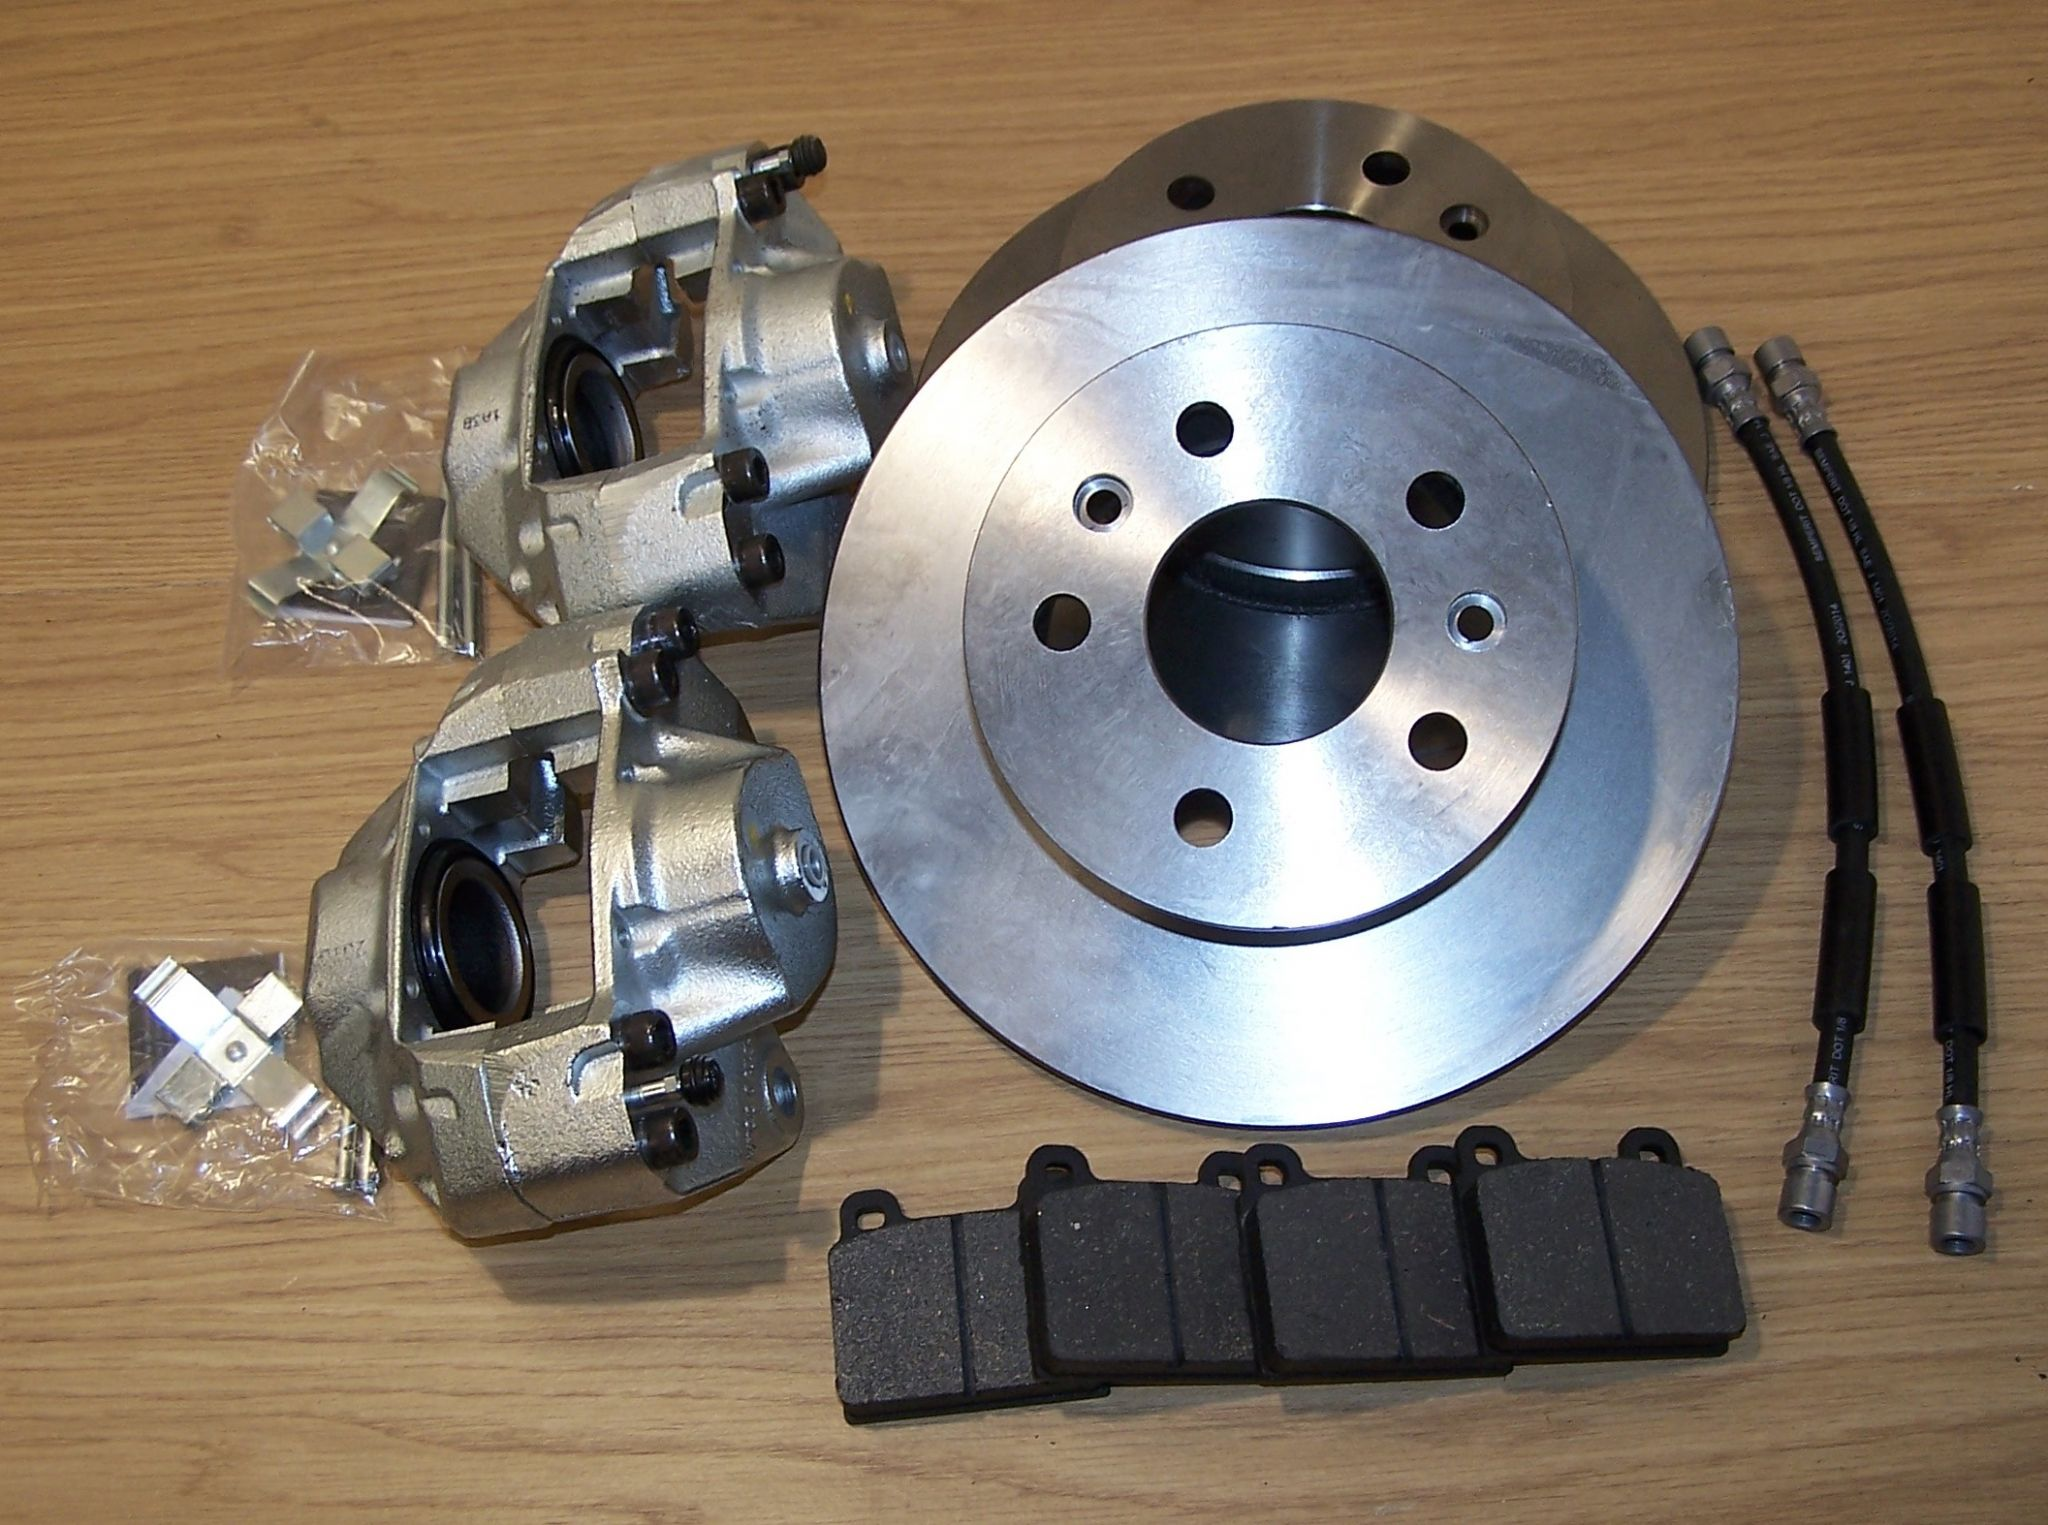 Brake discs Genuine Calipers Hoses Pads with Fitting kit ...